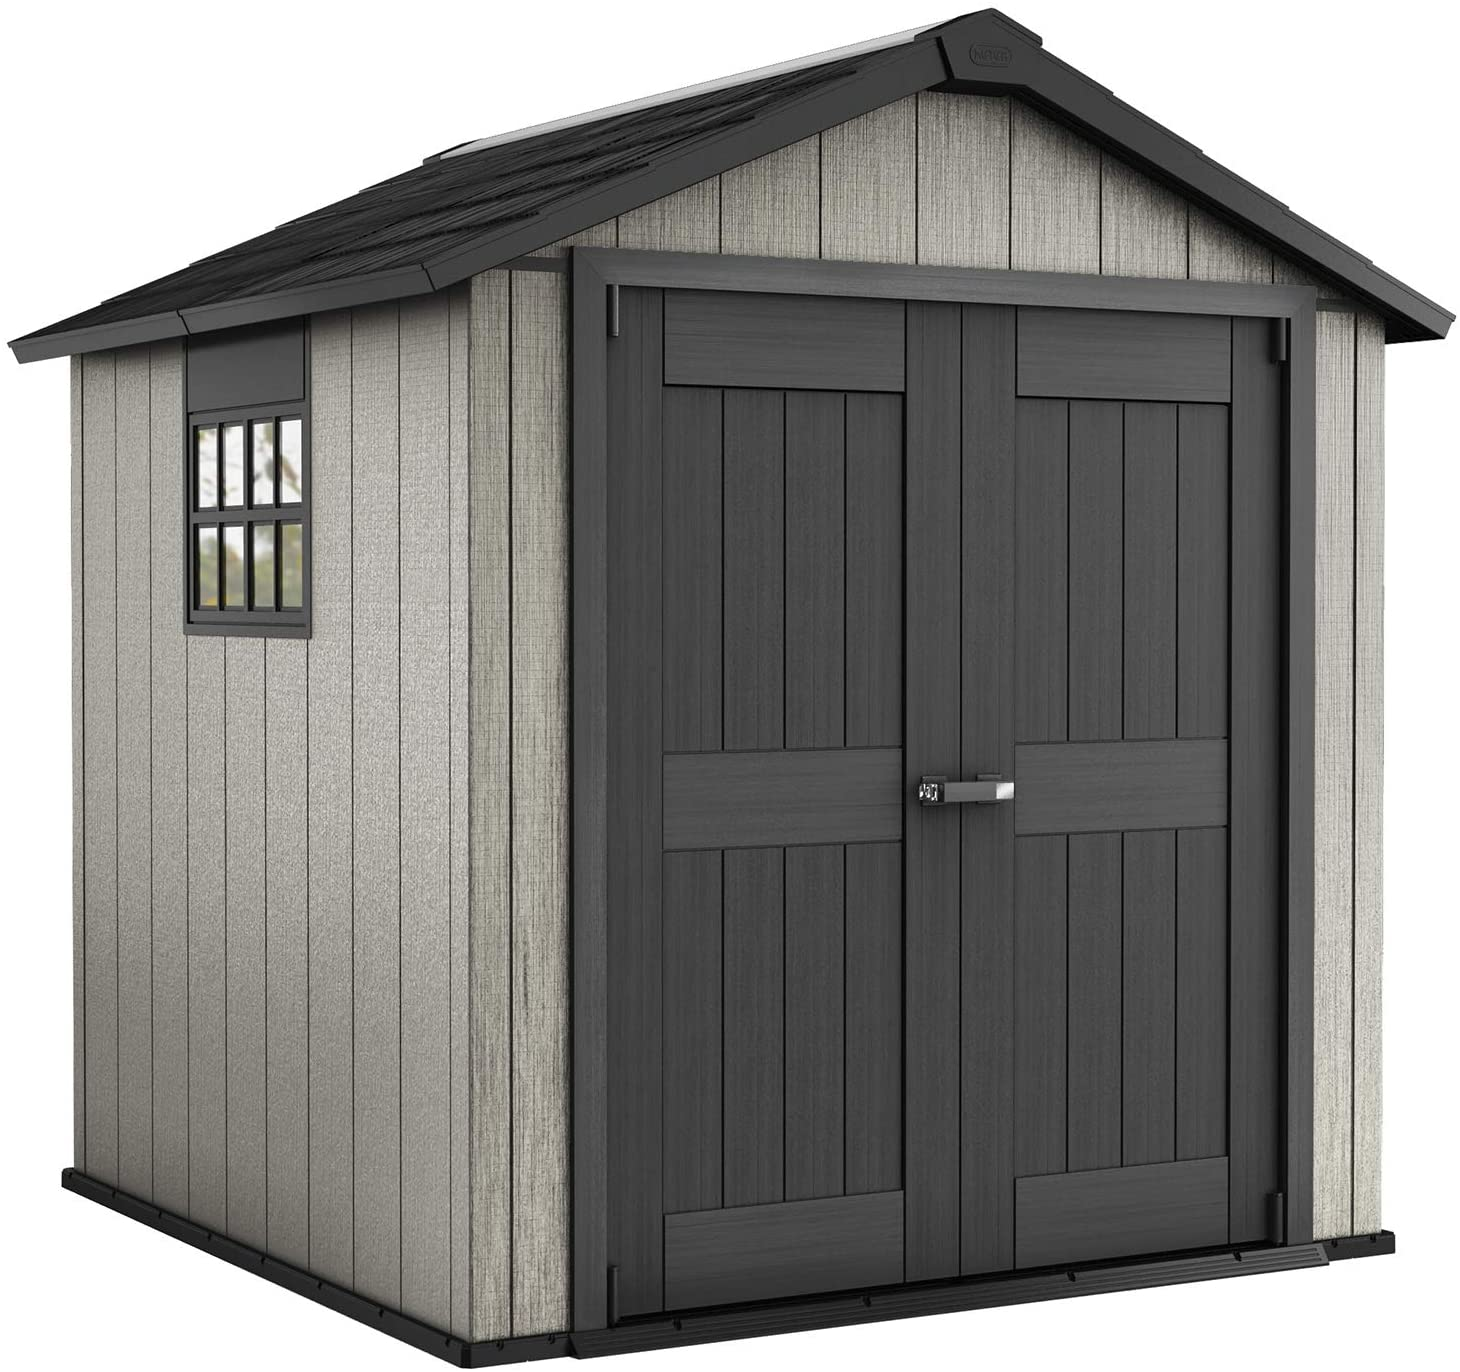 High quality new Keter Oakland 7.5 x Max 61% OFF 7 Outdoor wi Duotech Paintable Storage Shed